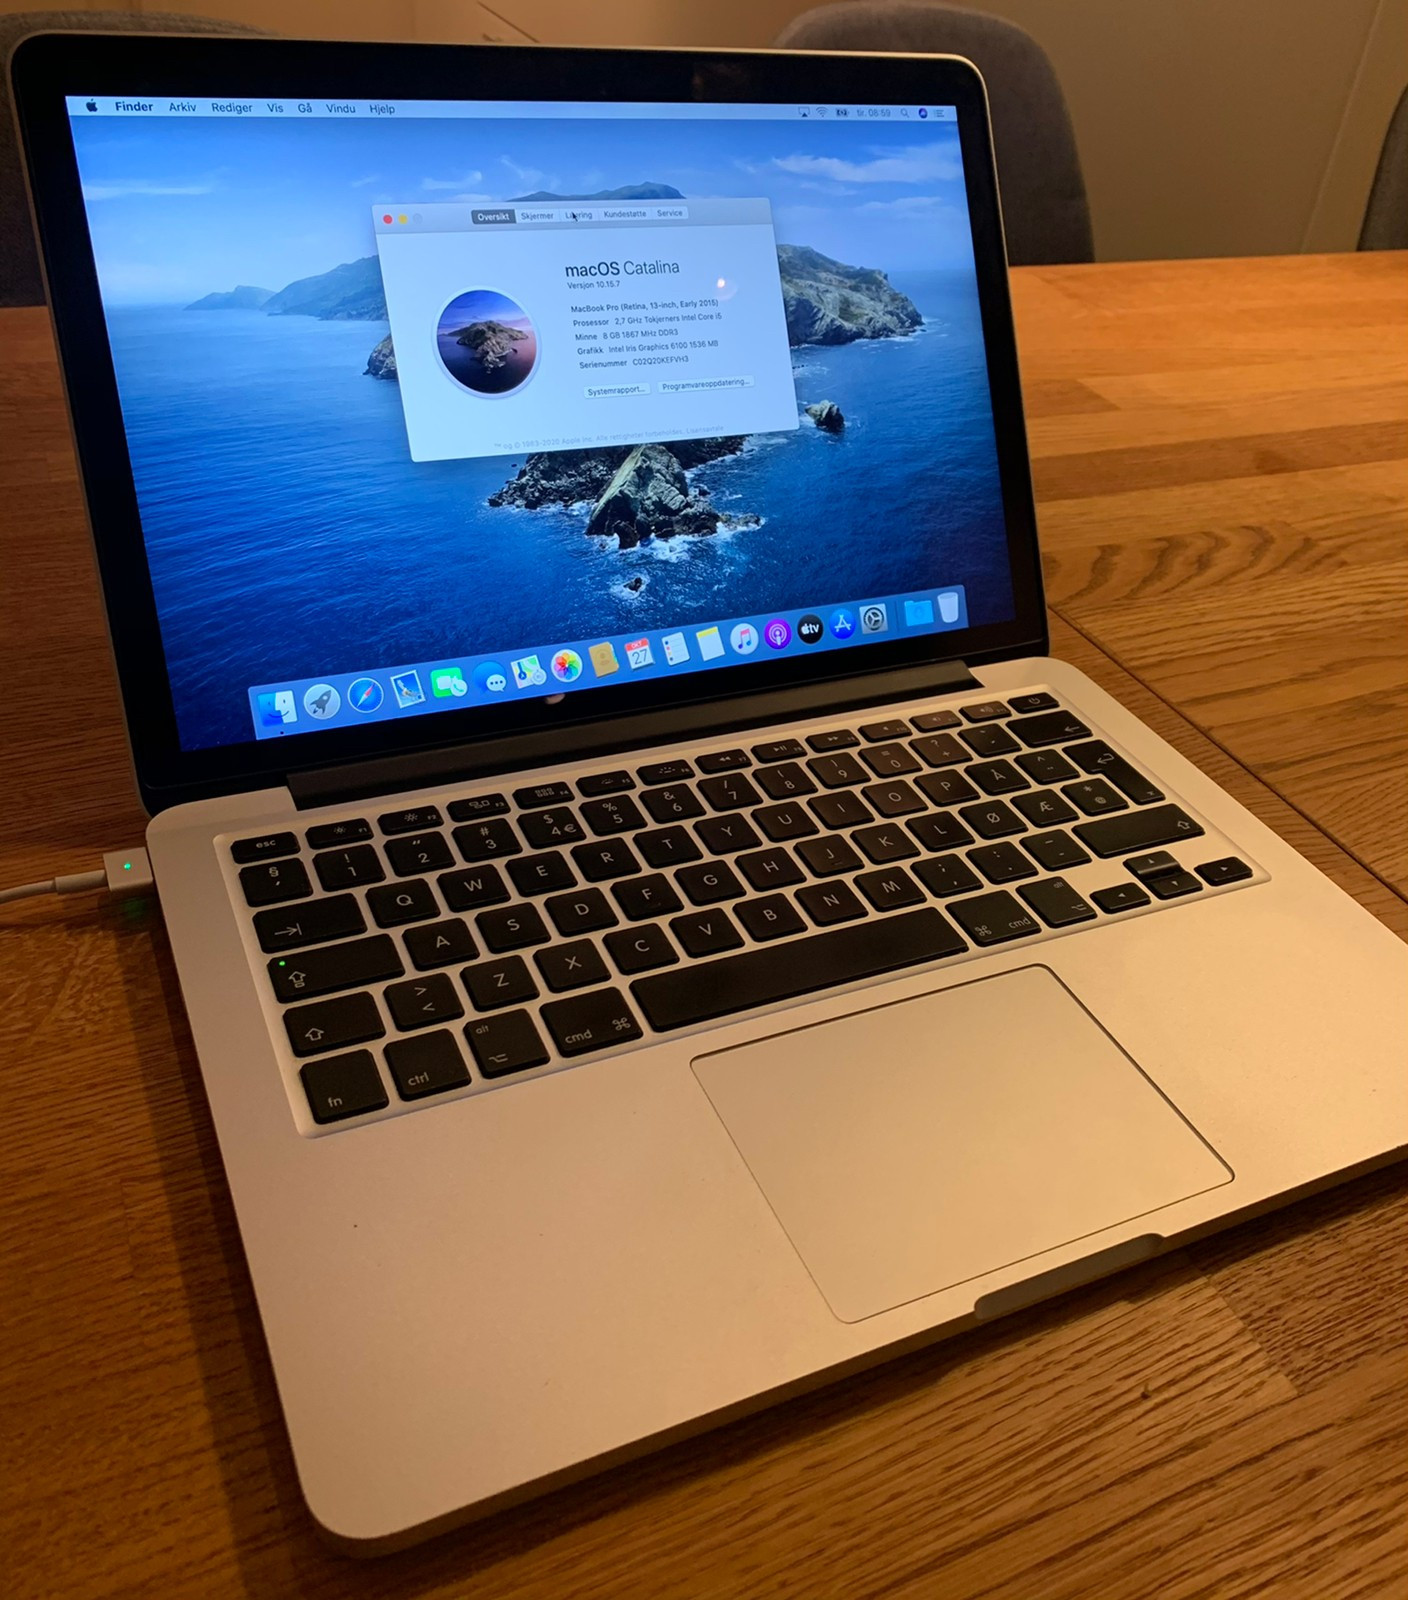 MacBook Pro 15 inch mid 2014 inkl. Tracpad 2 og lader